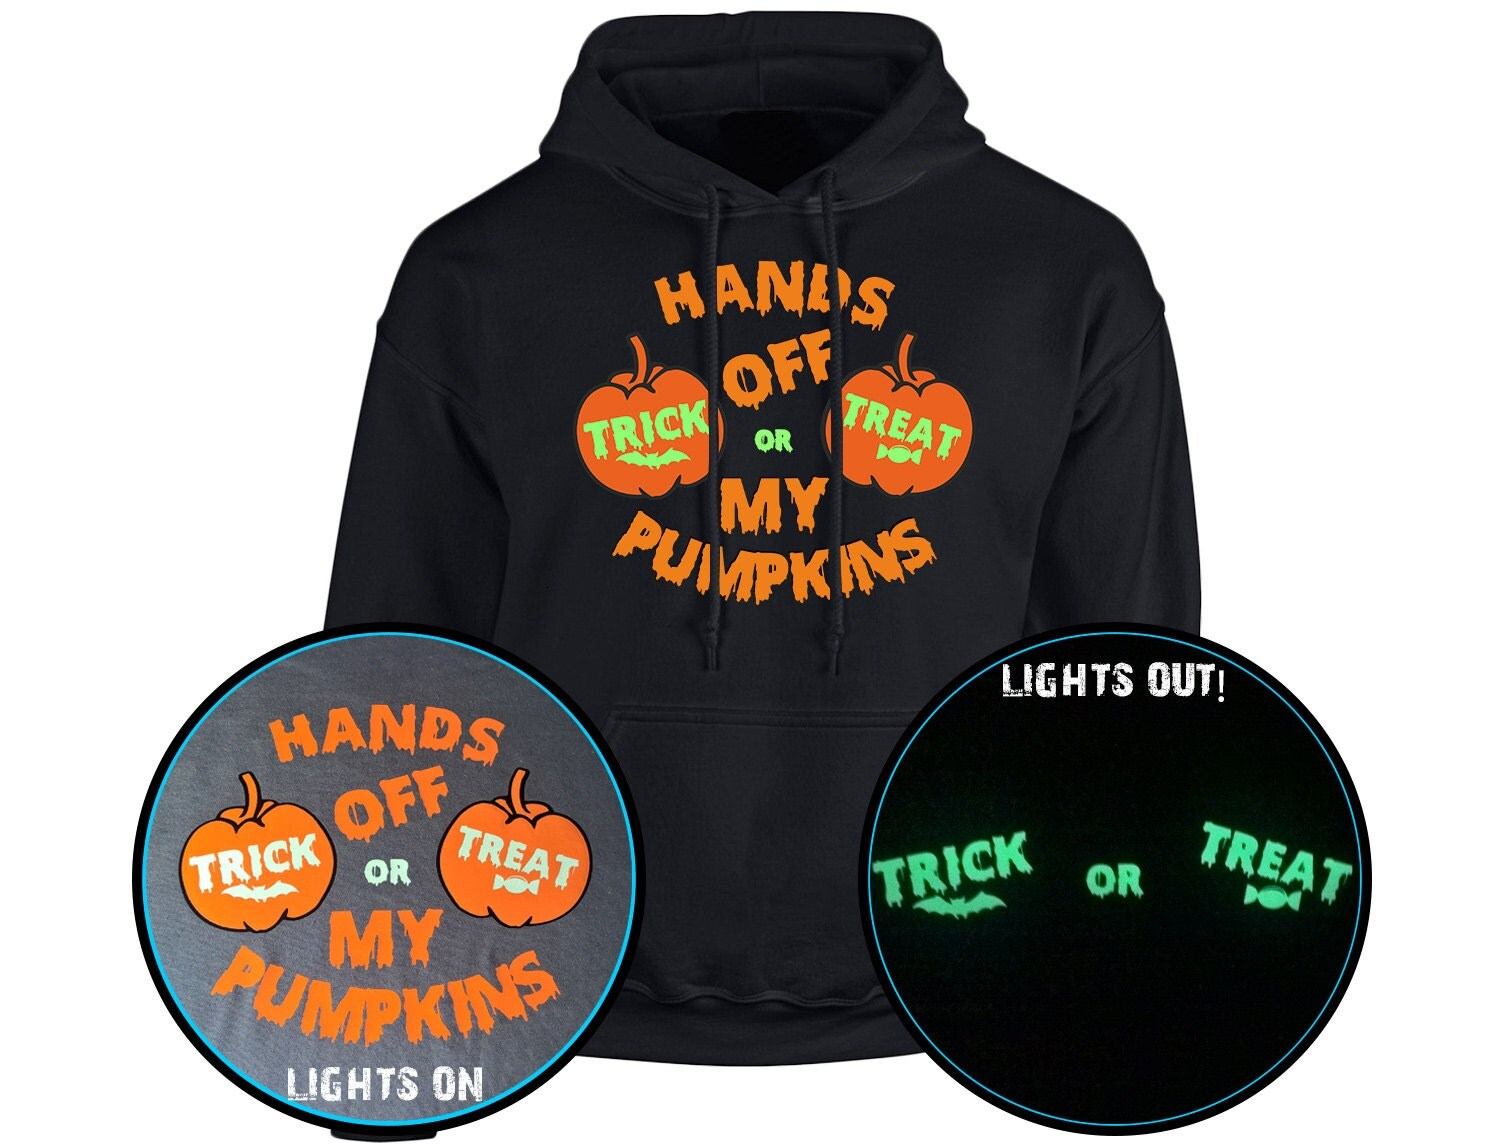 Hands Off My Pumpkins Trick or Treat GLOW IN DARK Adult Unisex Halloween Hoodie (6 Colours)